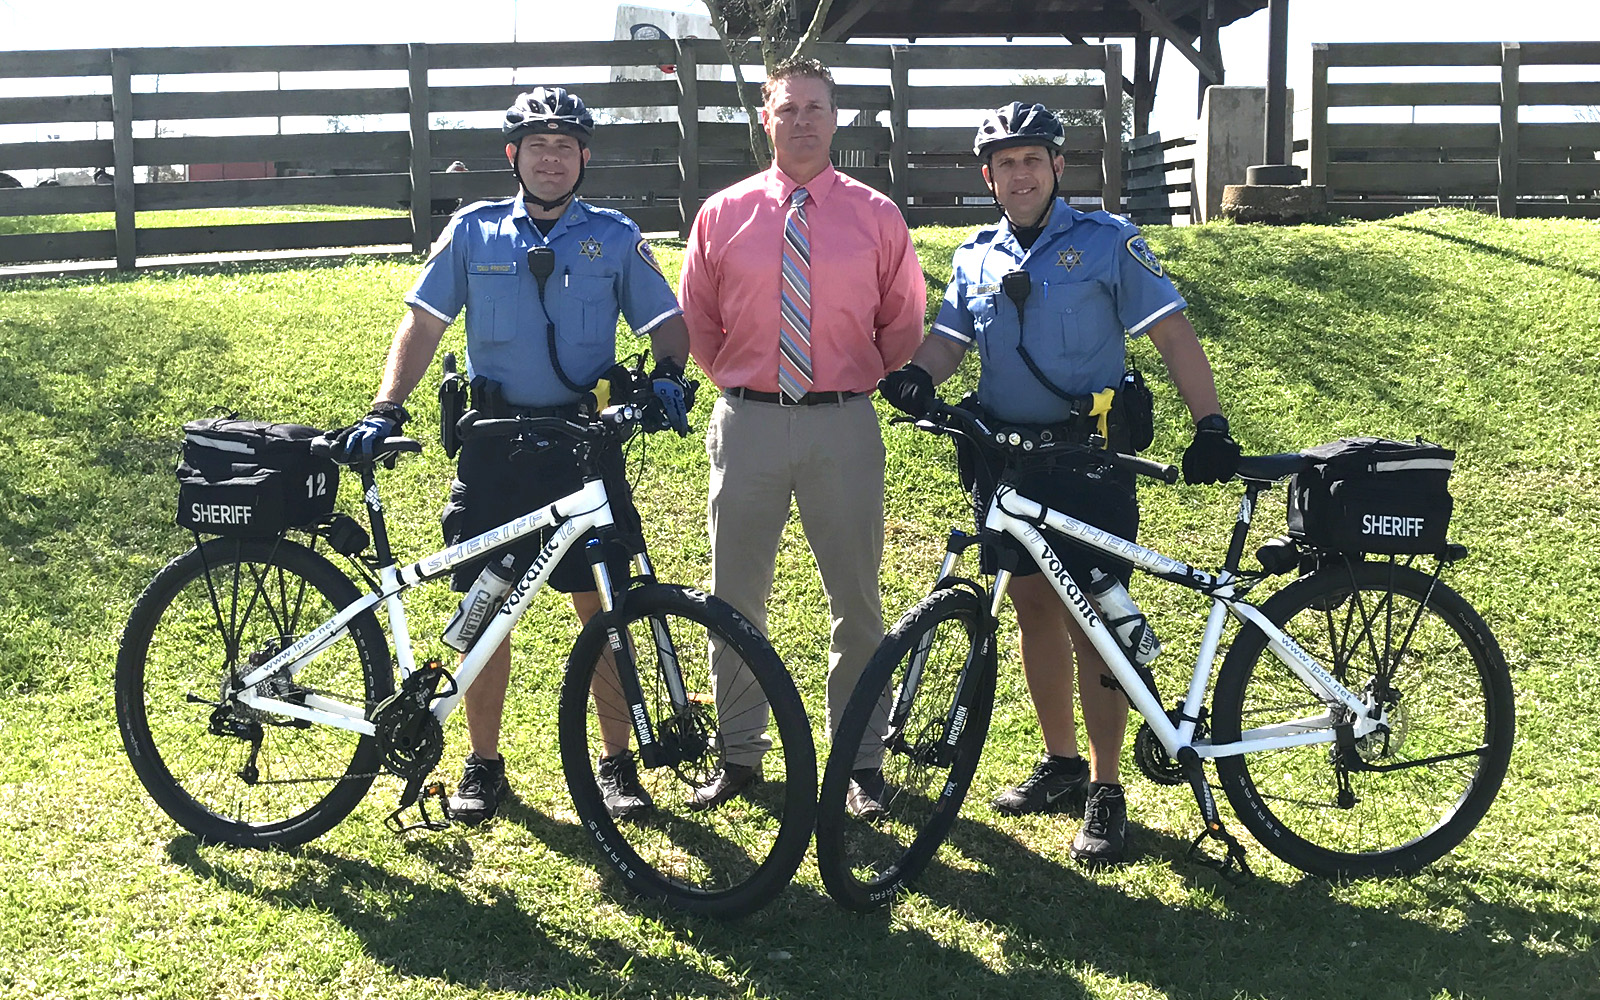 Sergeant Todd Prevost (left) and Deputy Jason Matherne (right) pictured with John Champagne (center) of the Community Crusaders of Lafourche.